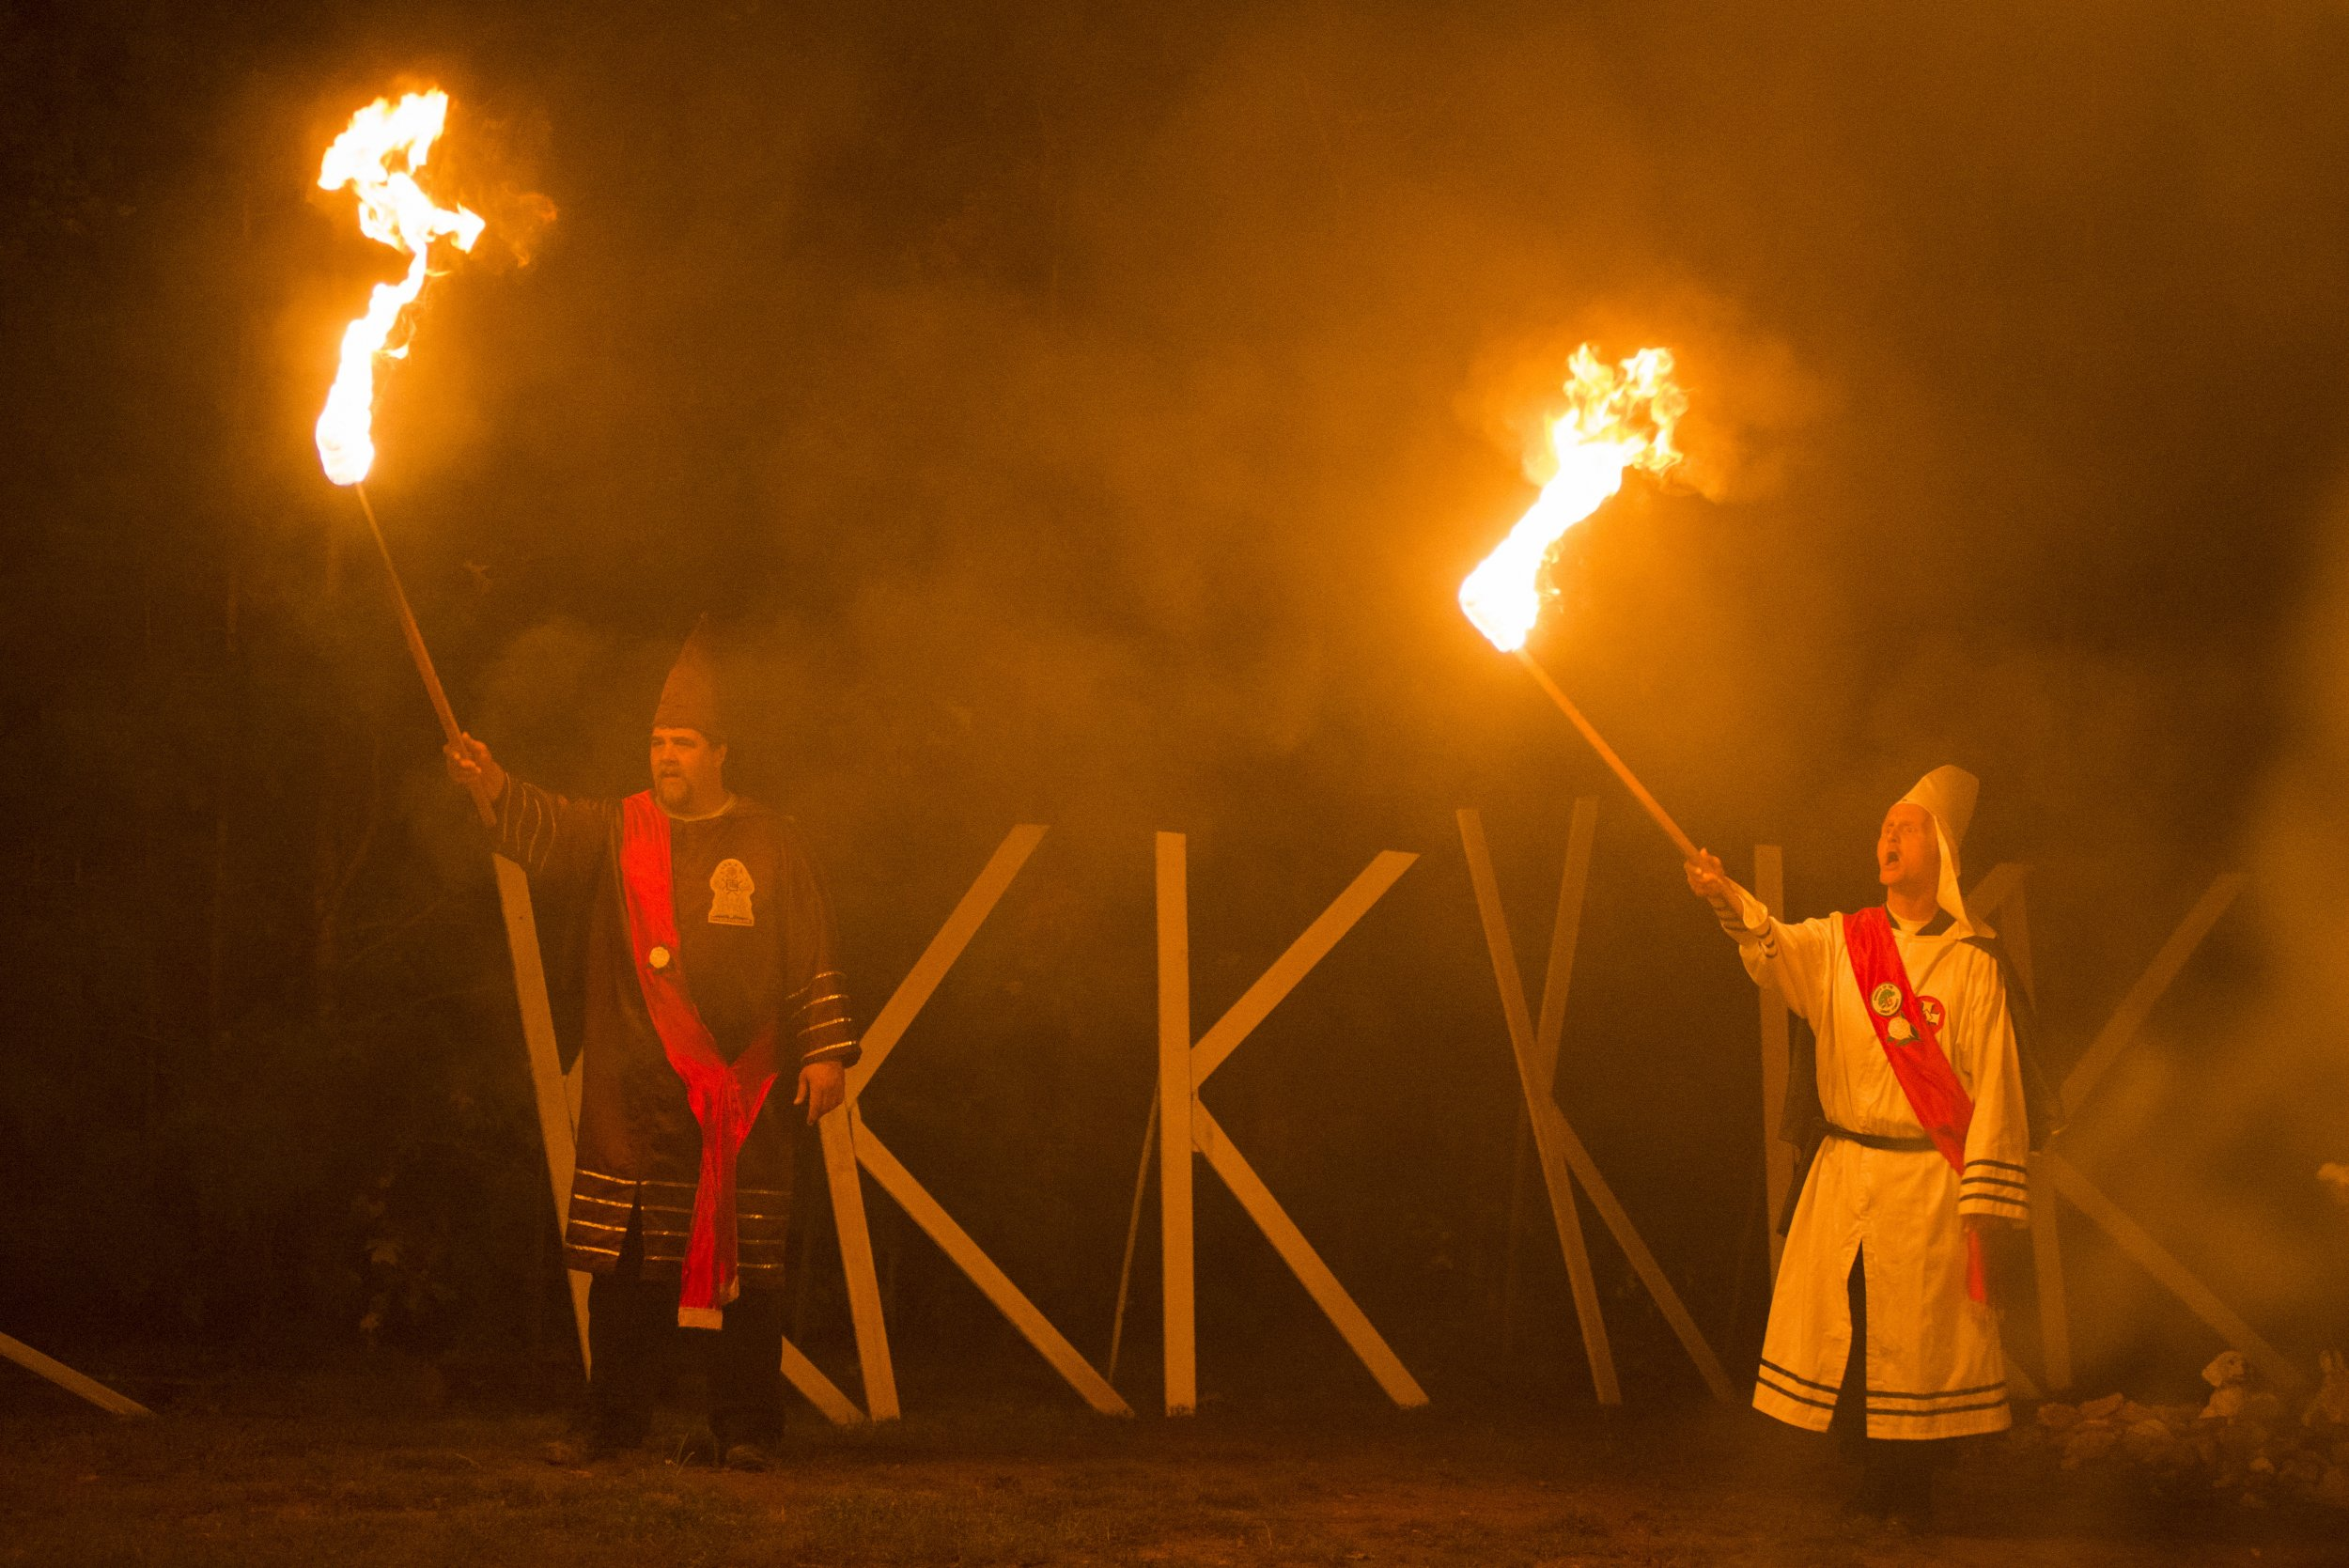 the kkk fear behind hate As the liberal virginia city attempts to 'tell the truth about race in our history', the ku klux klan, counter-protesters and confederate loyalists clash over what that means to them.